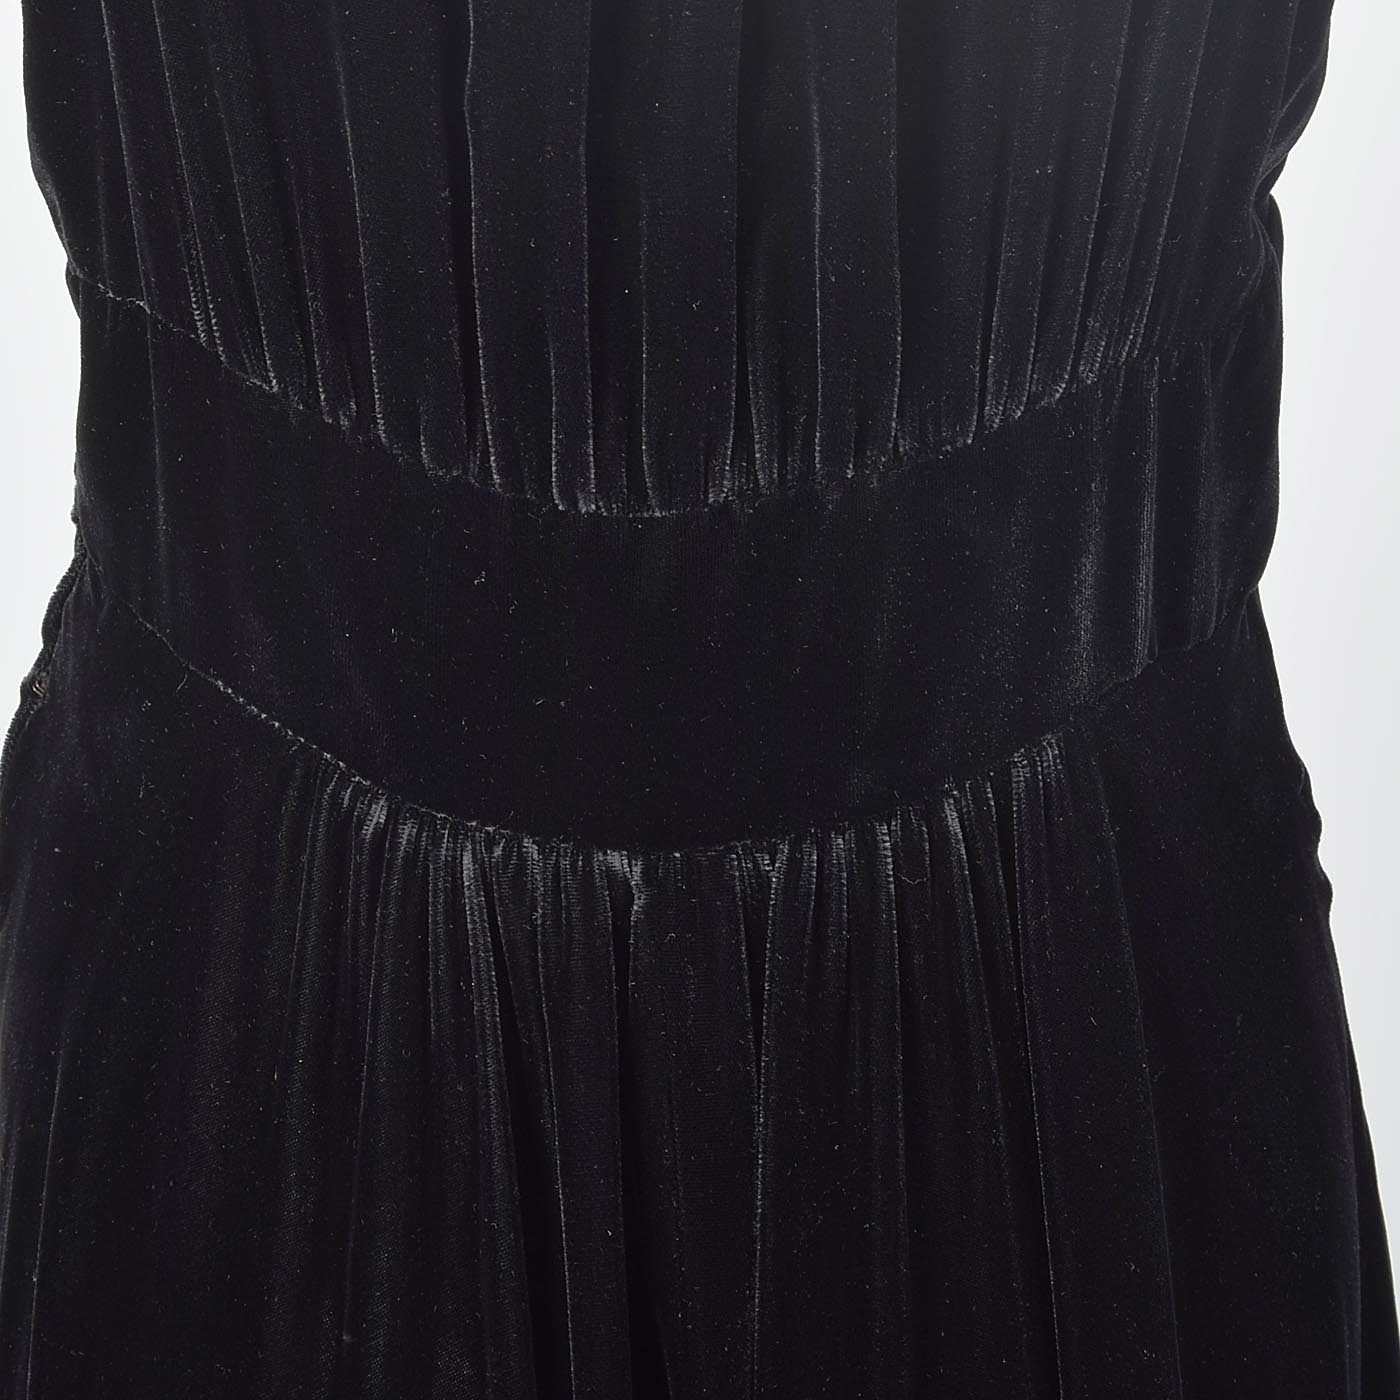 1930s Black Velvet Dress with Full Skirt